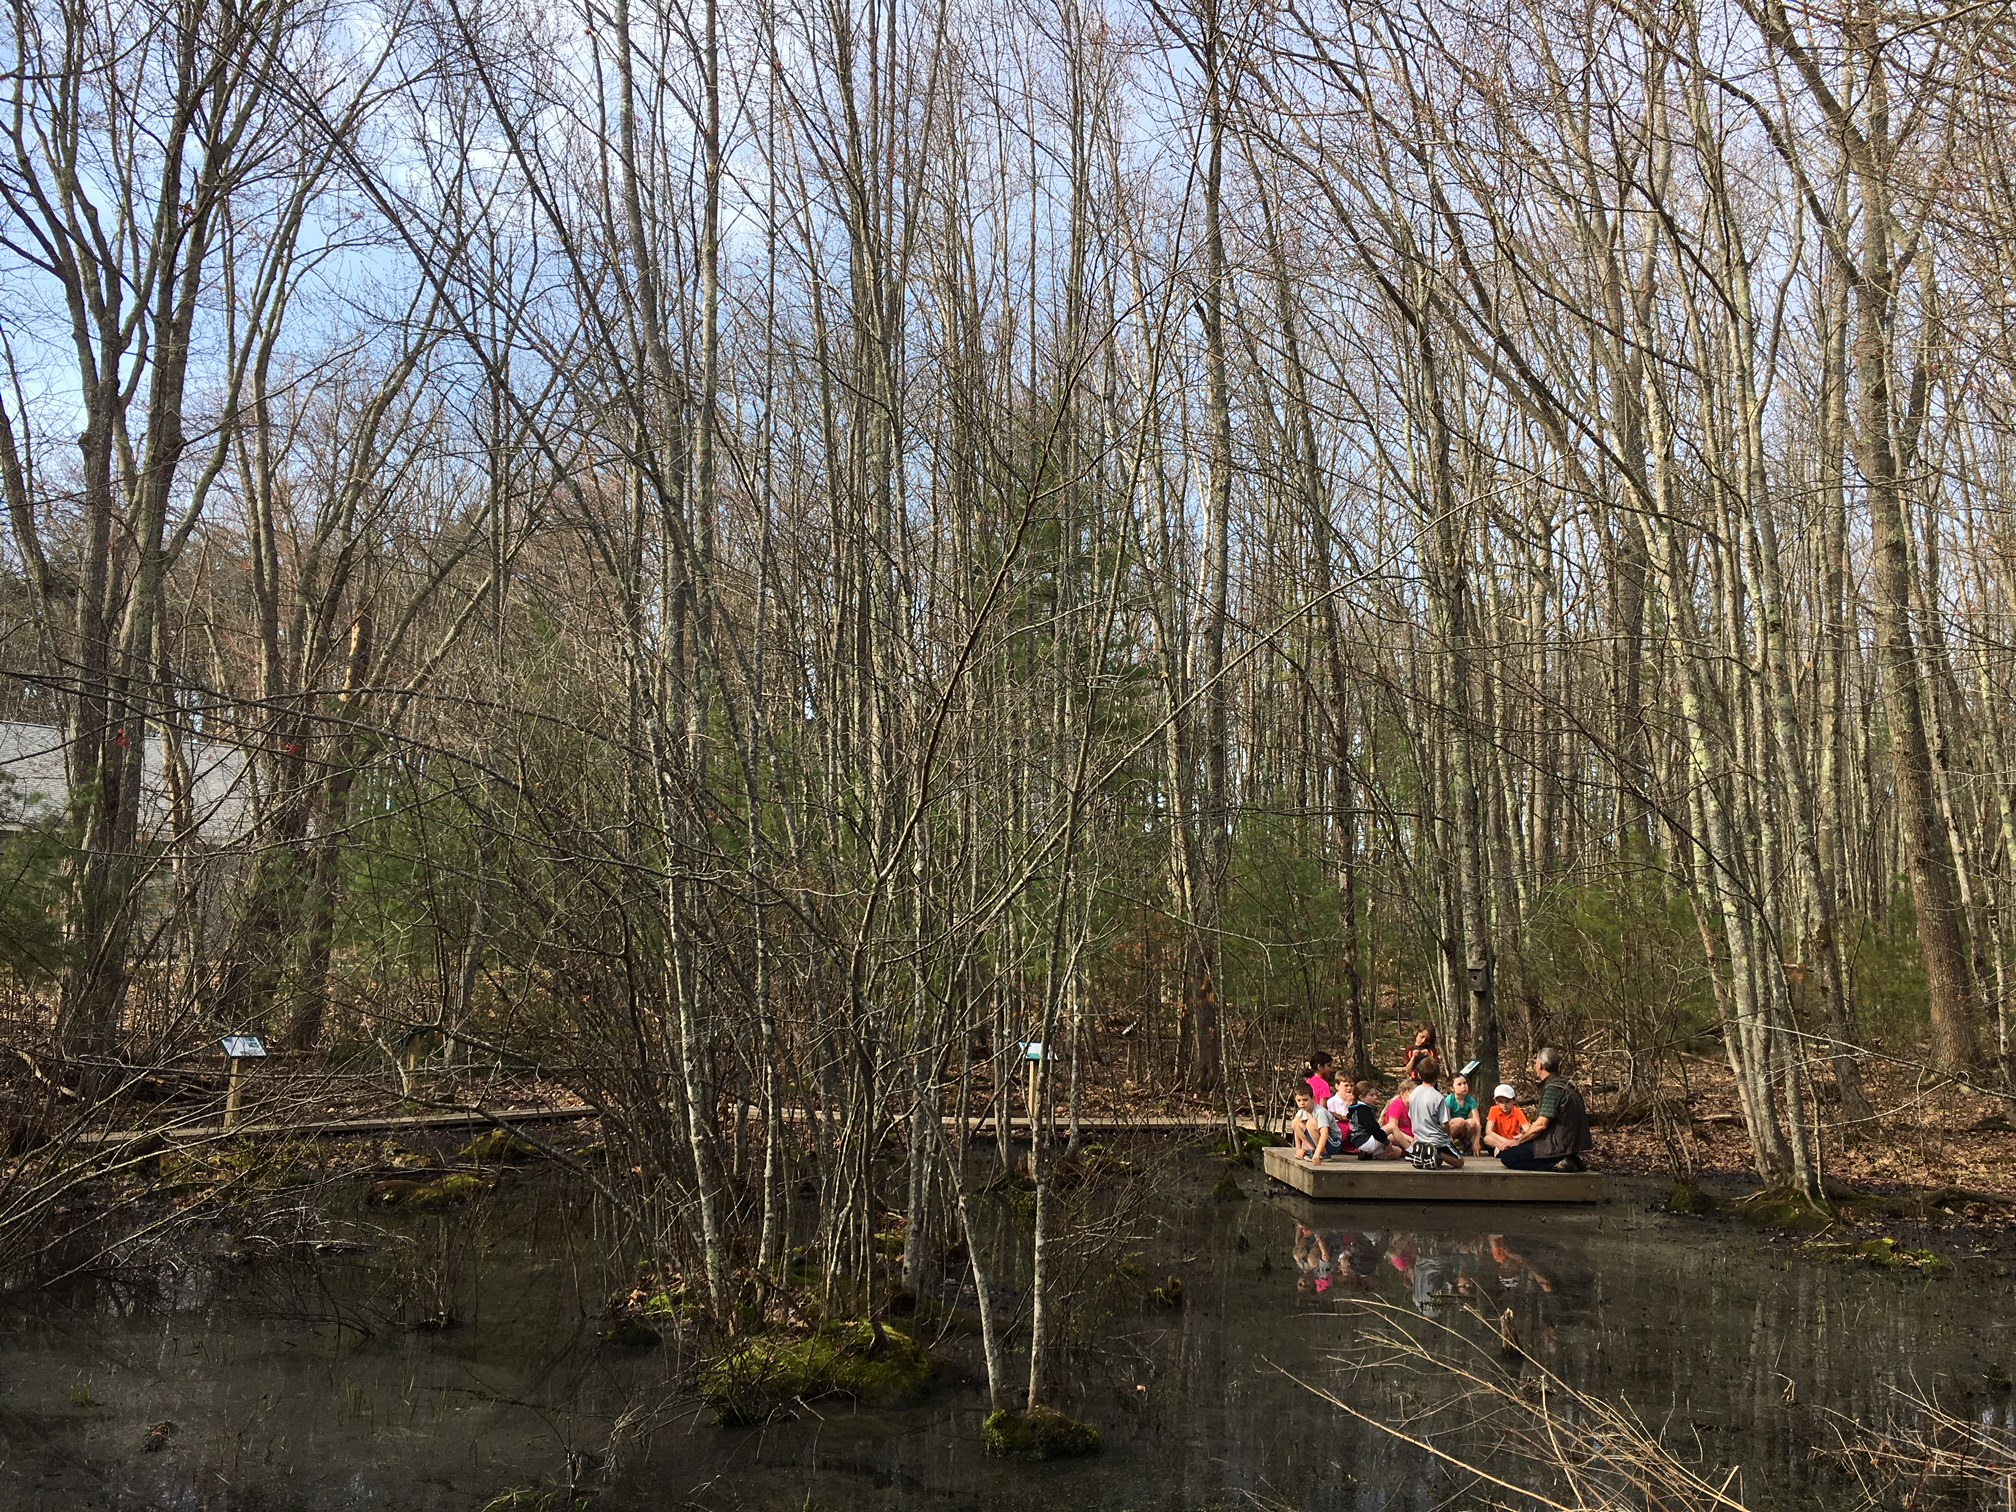 The lower elementary class takes a lesson out to the vernal pool.